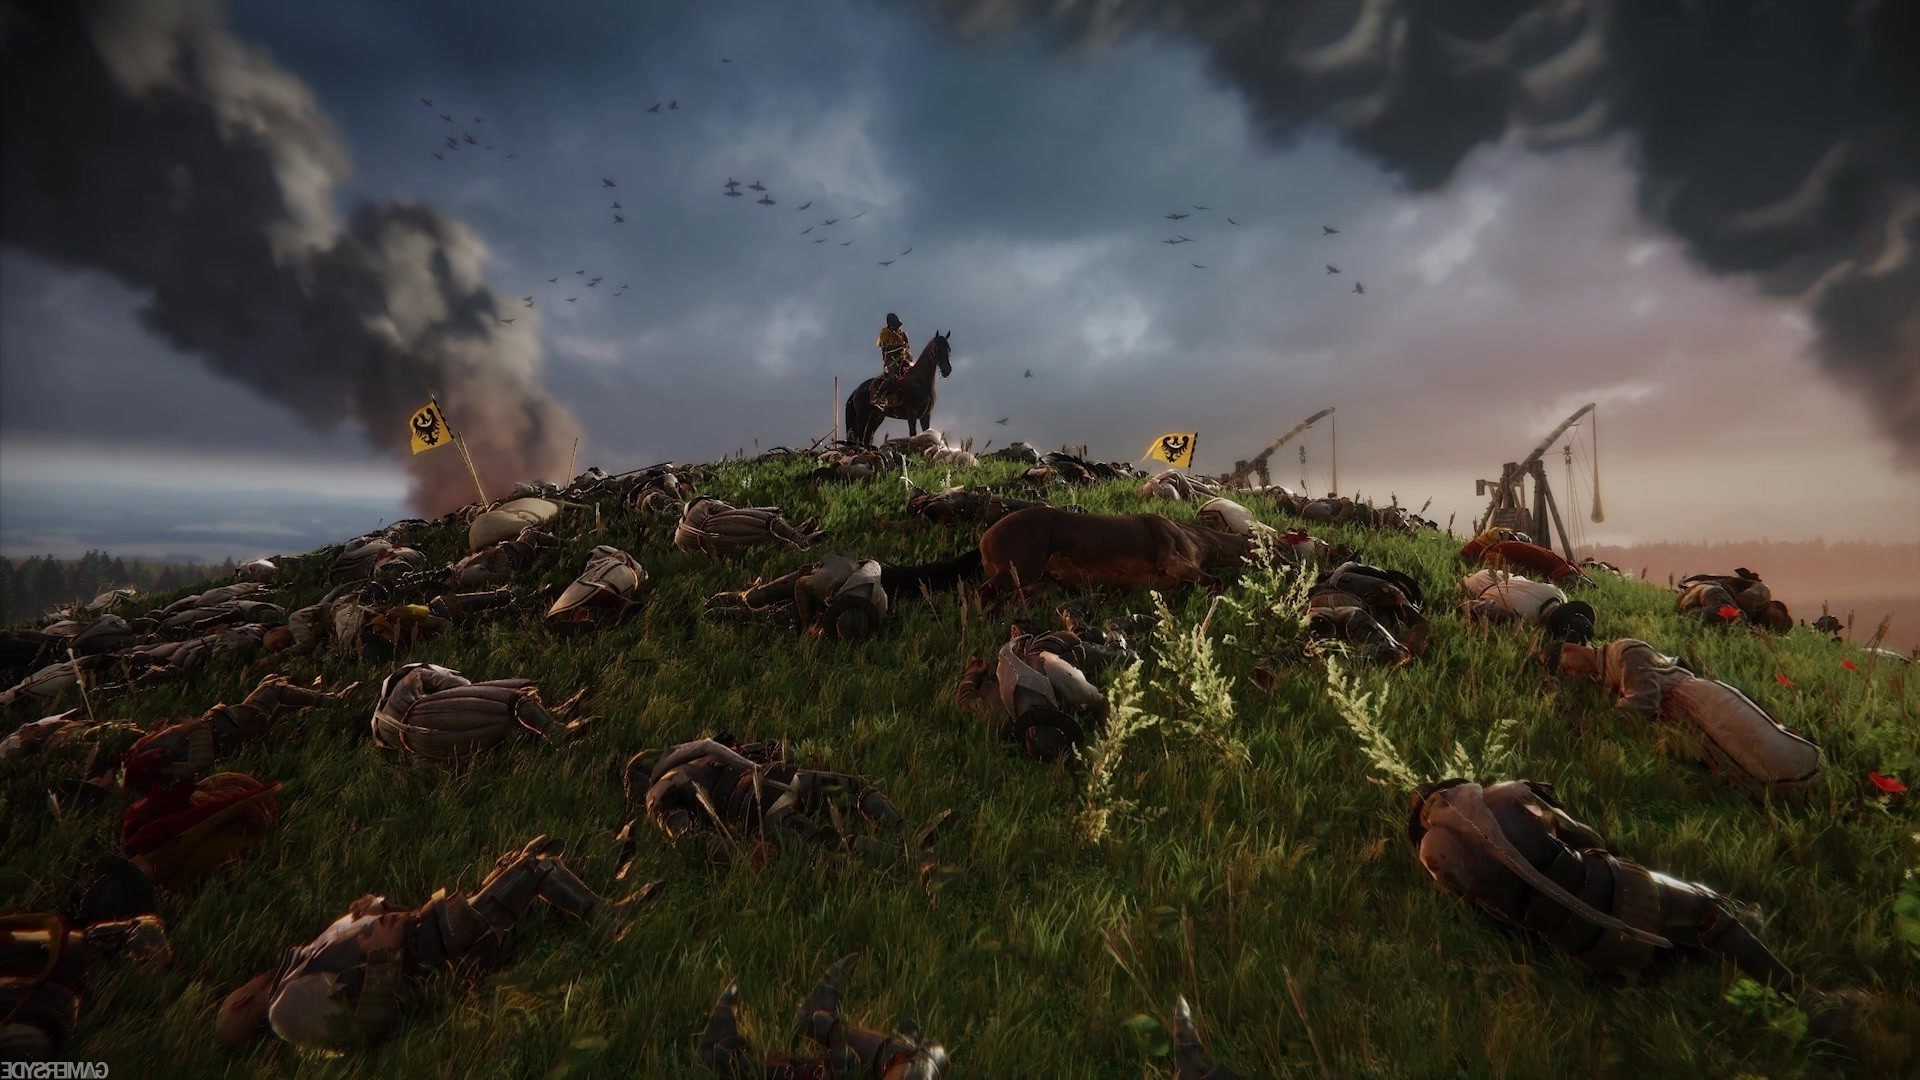 3d Game Wallpaper For Mobile Video Games Kingdom Come Deliverance Wallpapers Hd